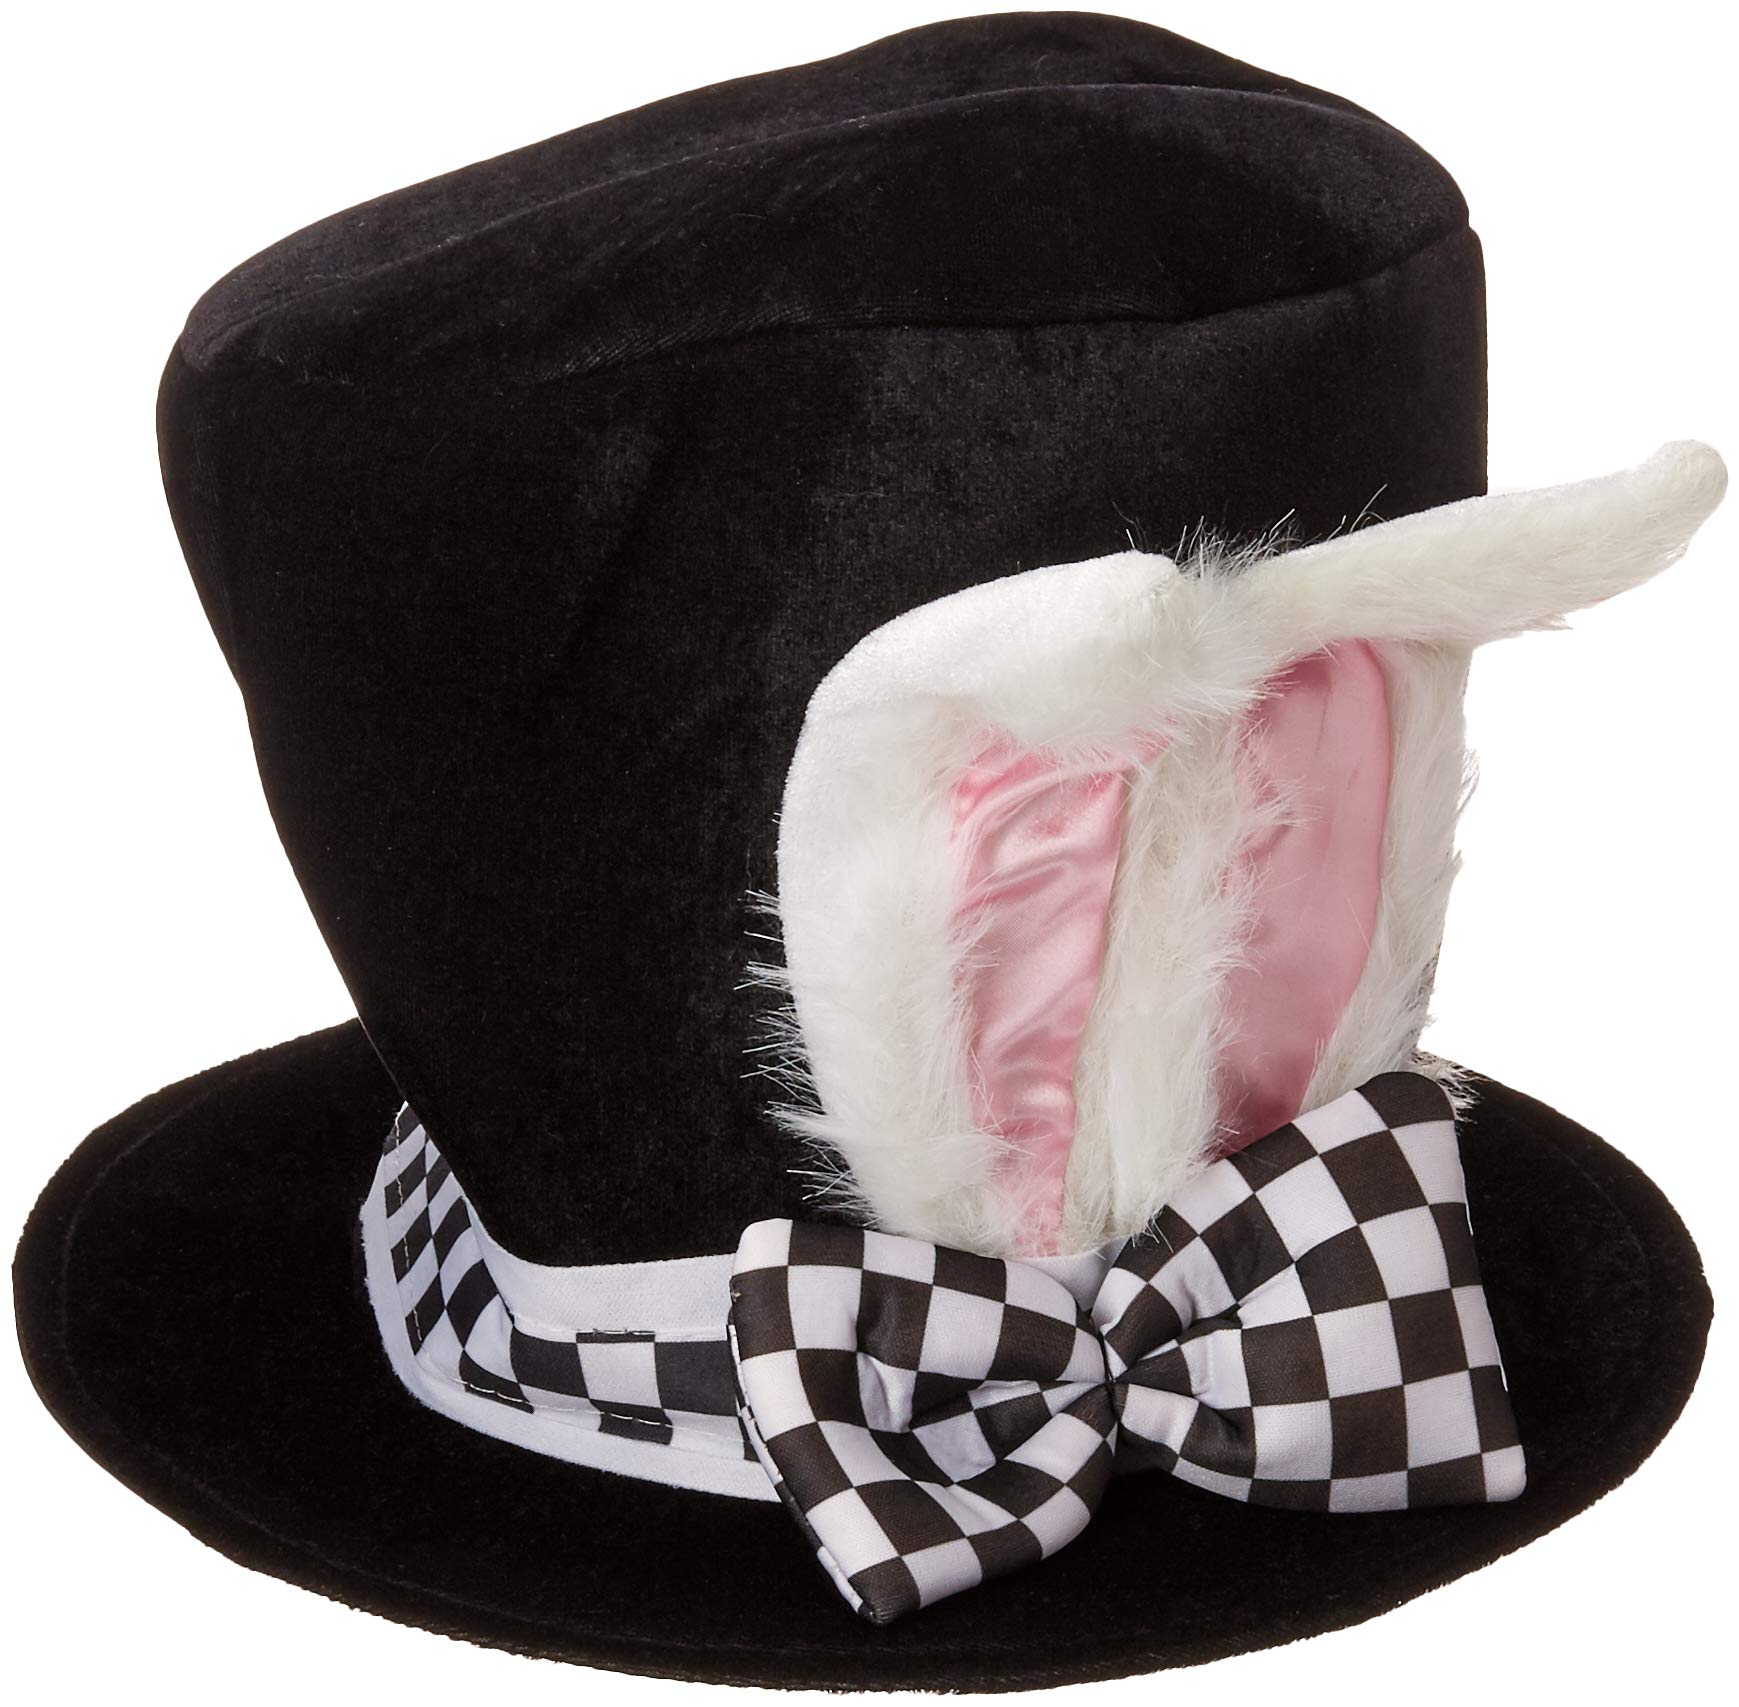 637d7d4f972 Jacobson Hat Company Men s Adult Black Velvet Bunny Ear Top Hat product  image